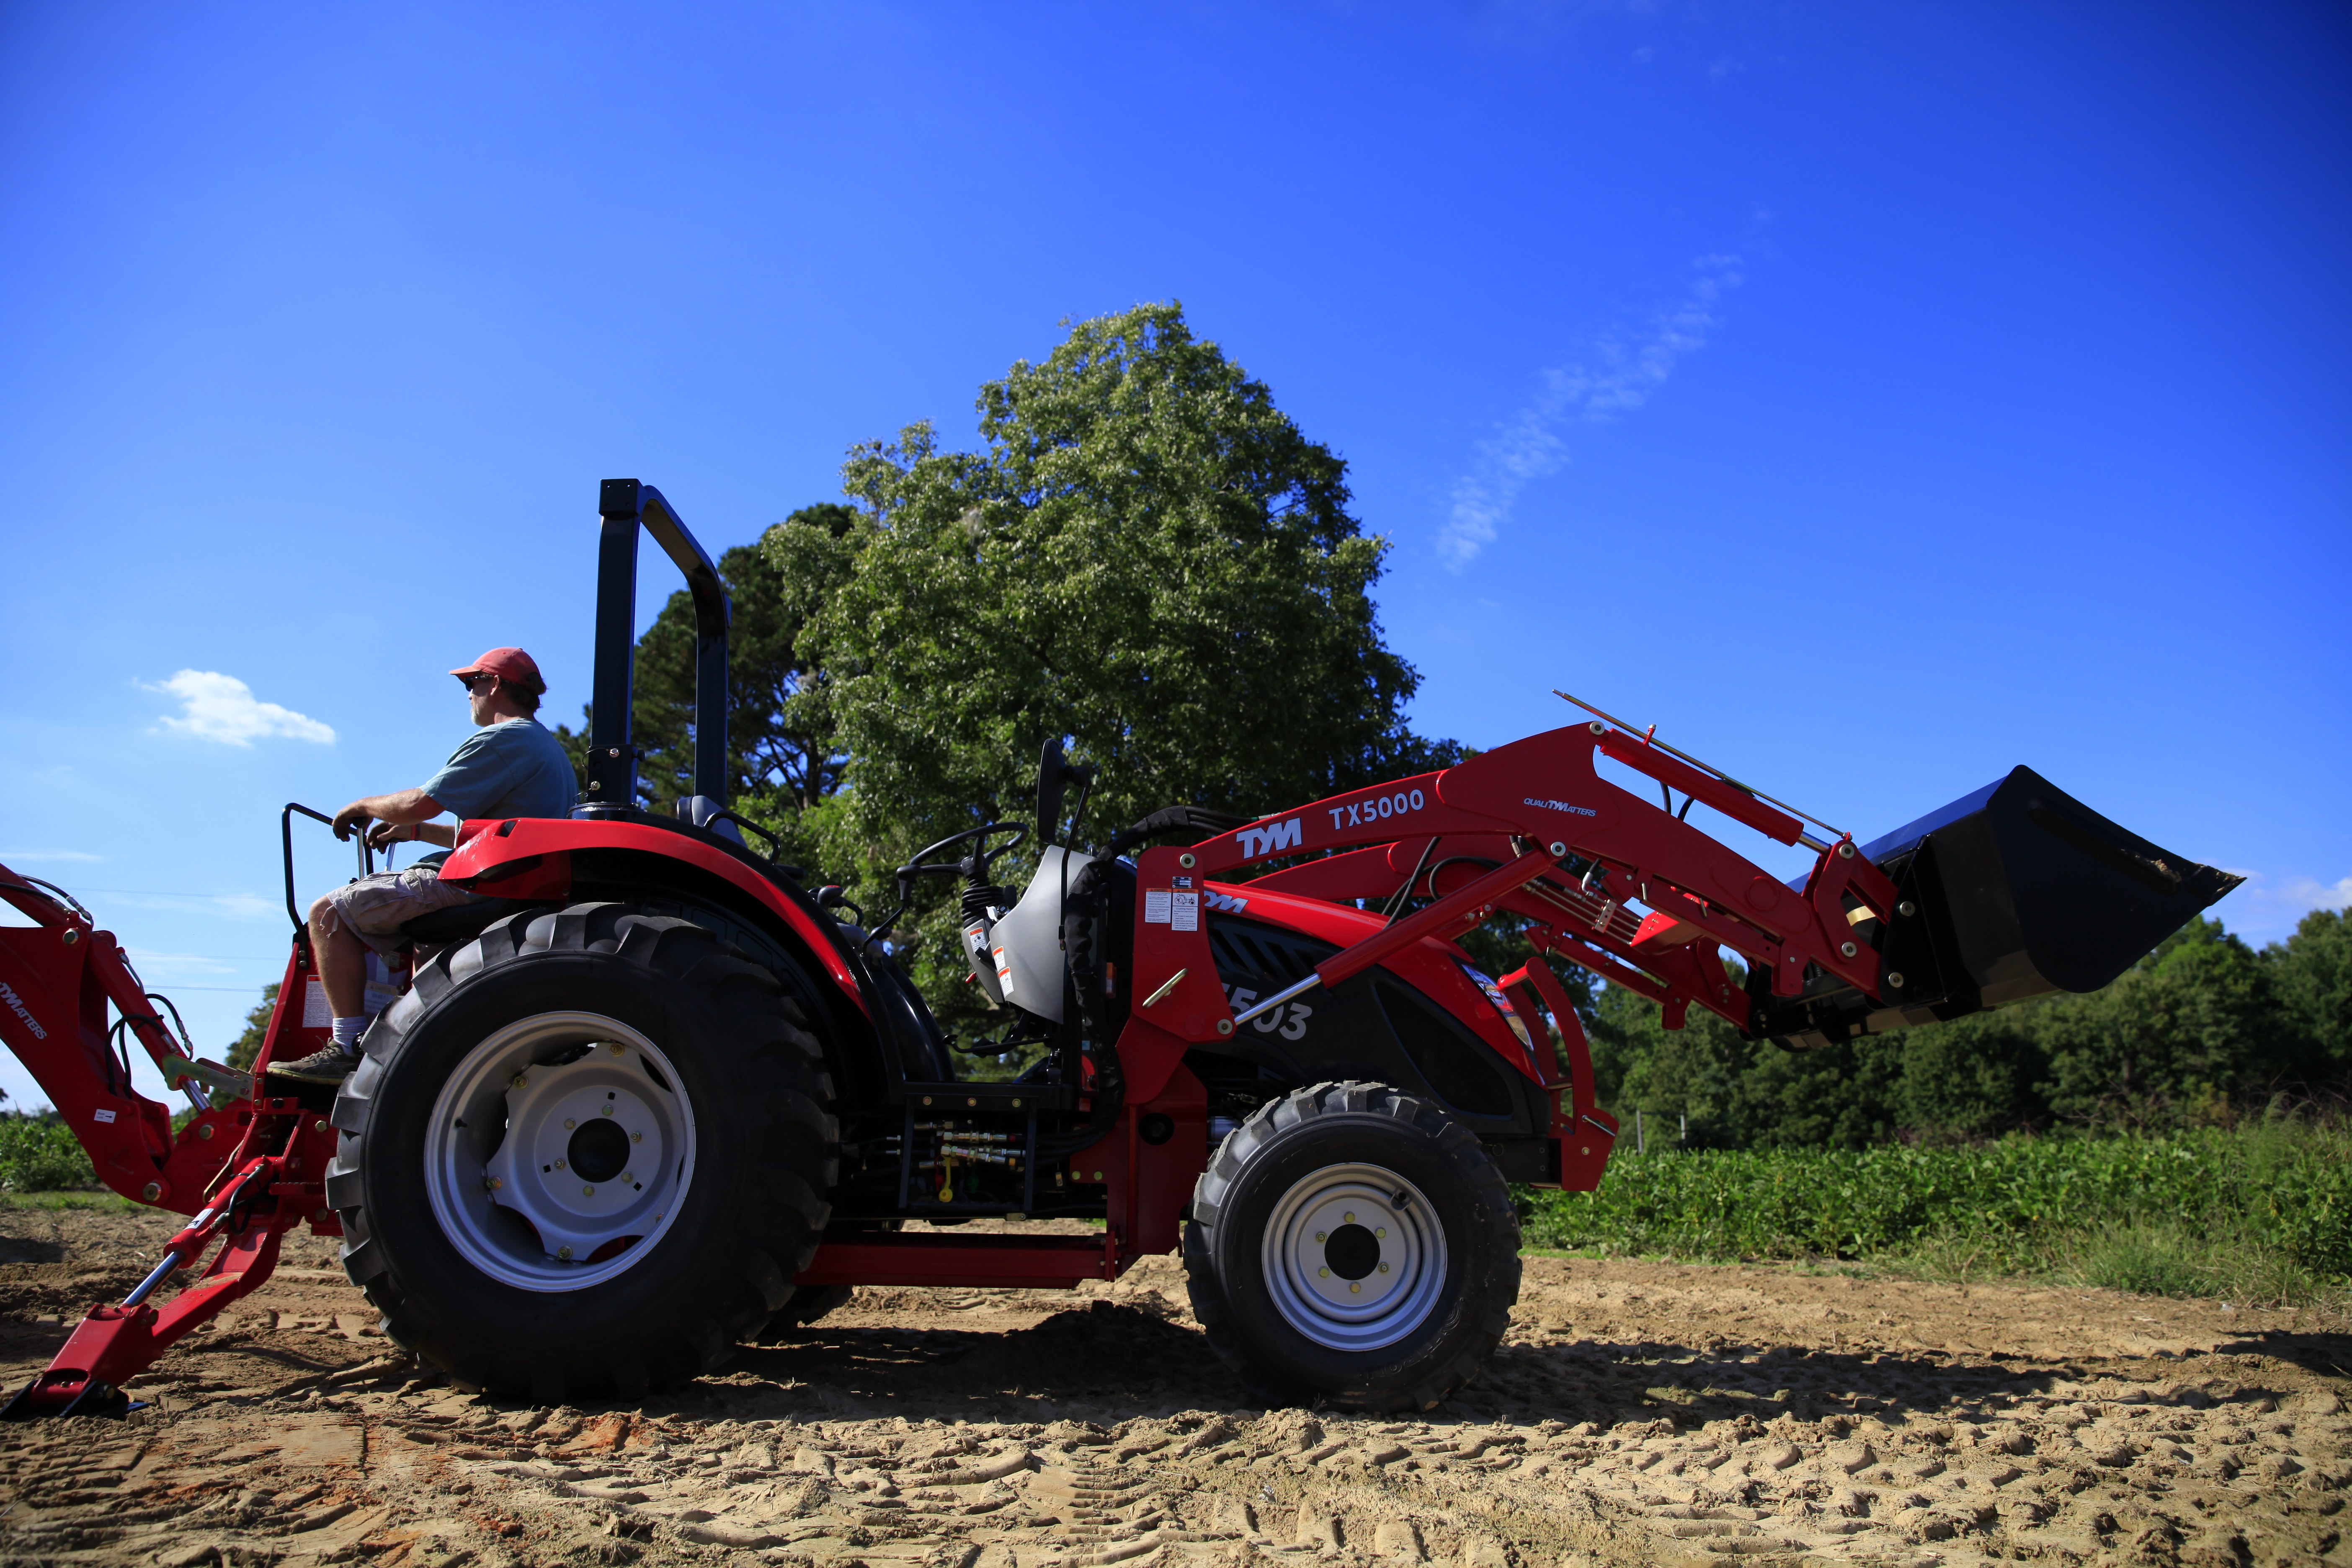 T503 compact tractor with a TX5000 front-end loader attachment and a ...